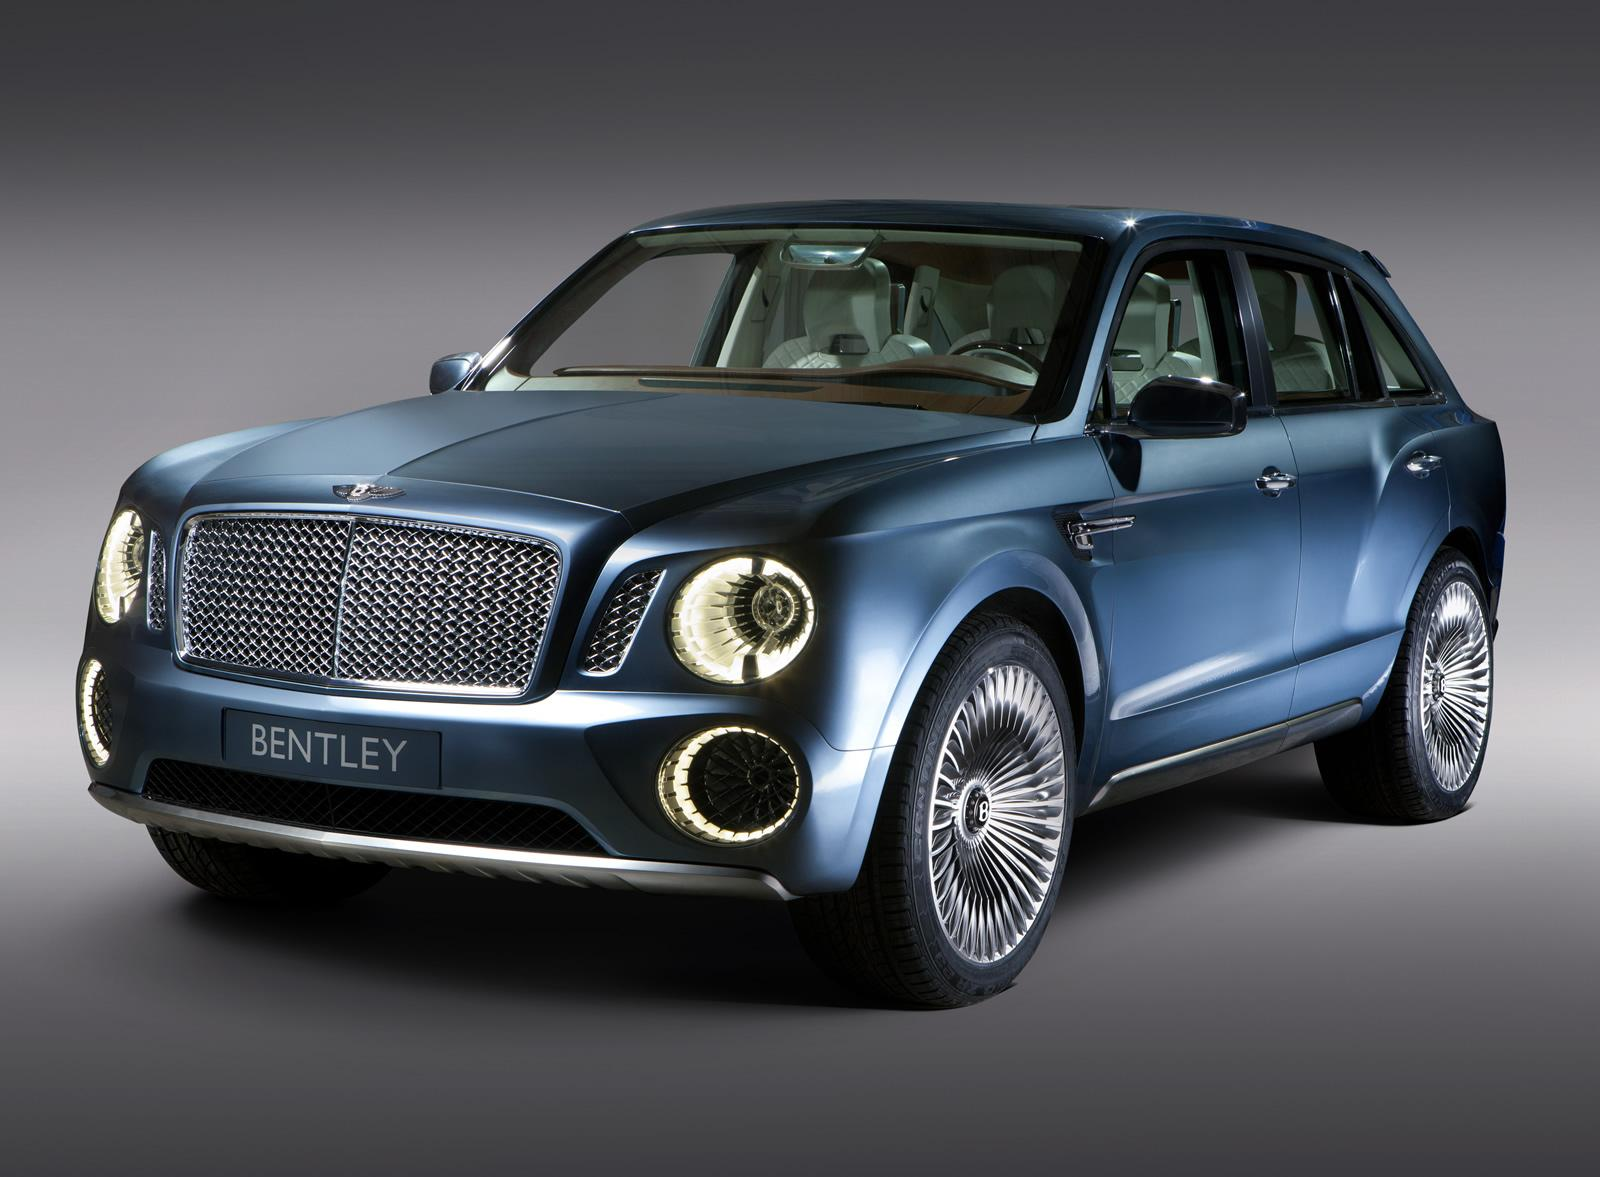 2013 Bentley Exp 9 F Suv Concept An Updated Tech Report